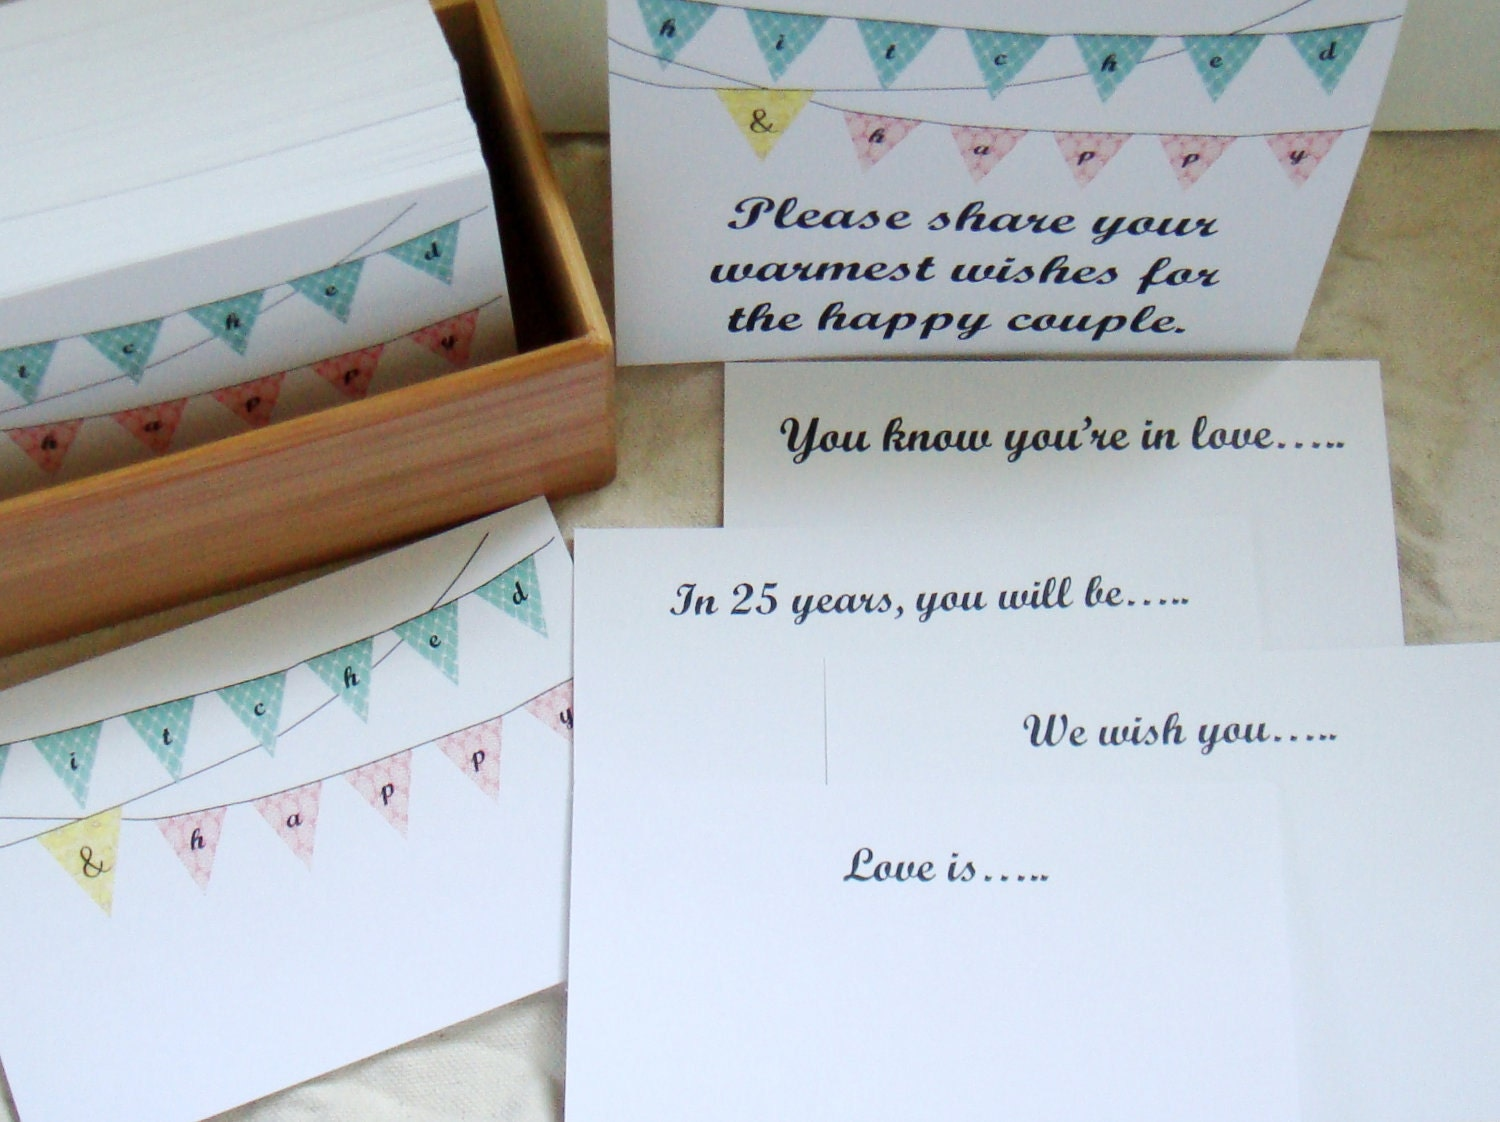 Prompted Message Guest Book - Hitched & Happy - Set of 200